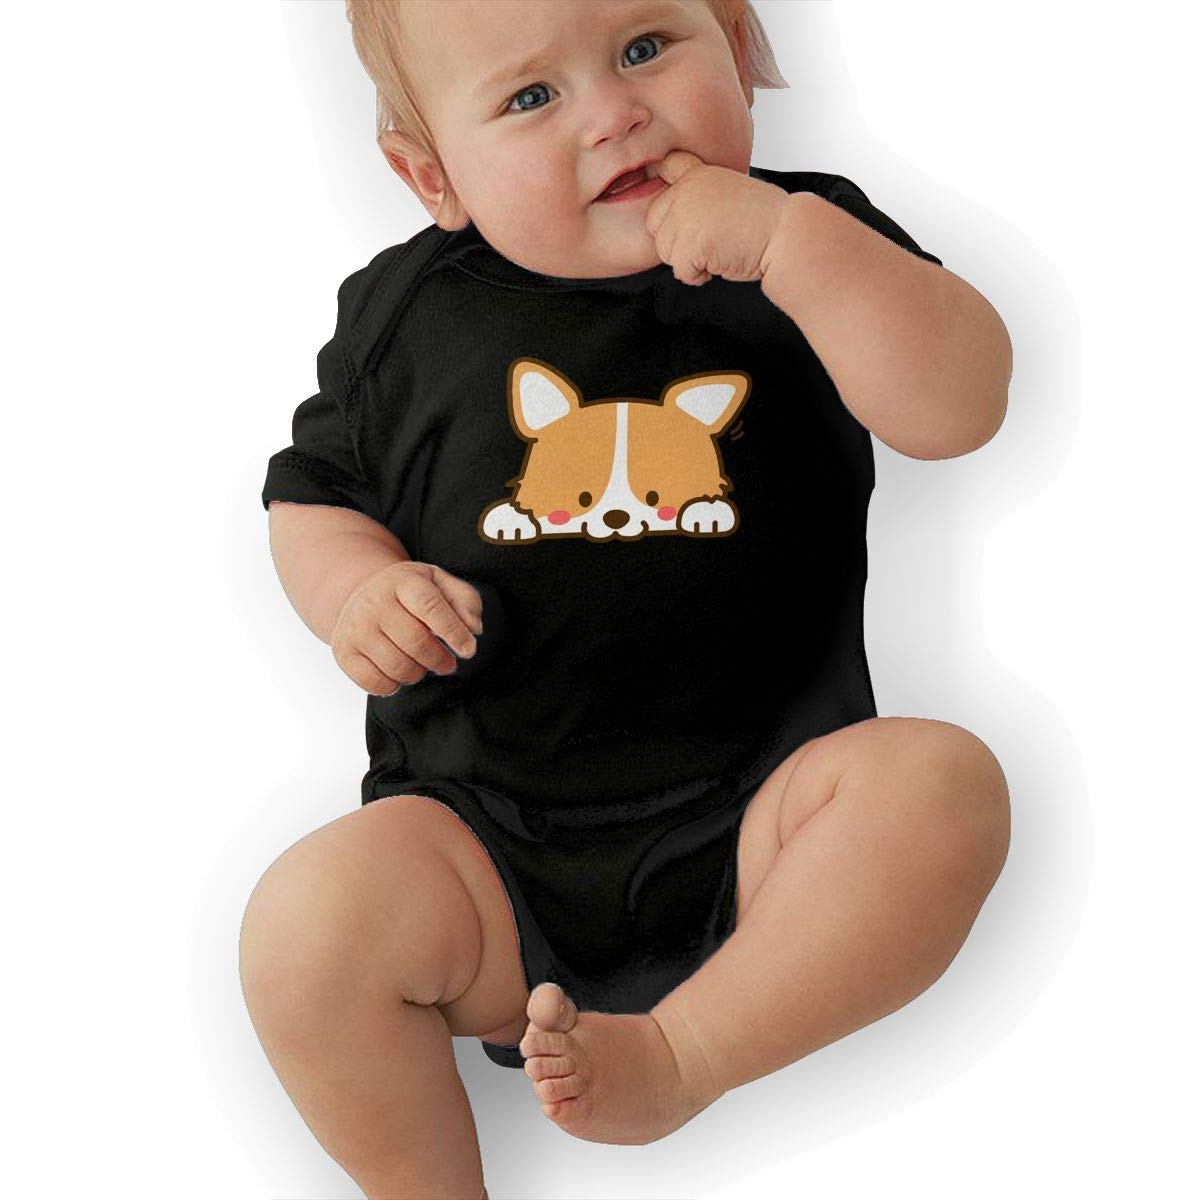 Dfenere Cartoon Dog Casual Newborn Baby Short Sleeve Bodysuit Romper Infant Summer Clothing